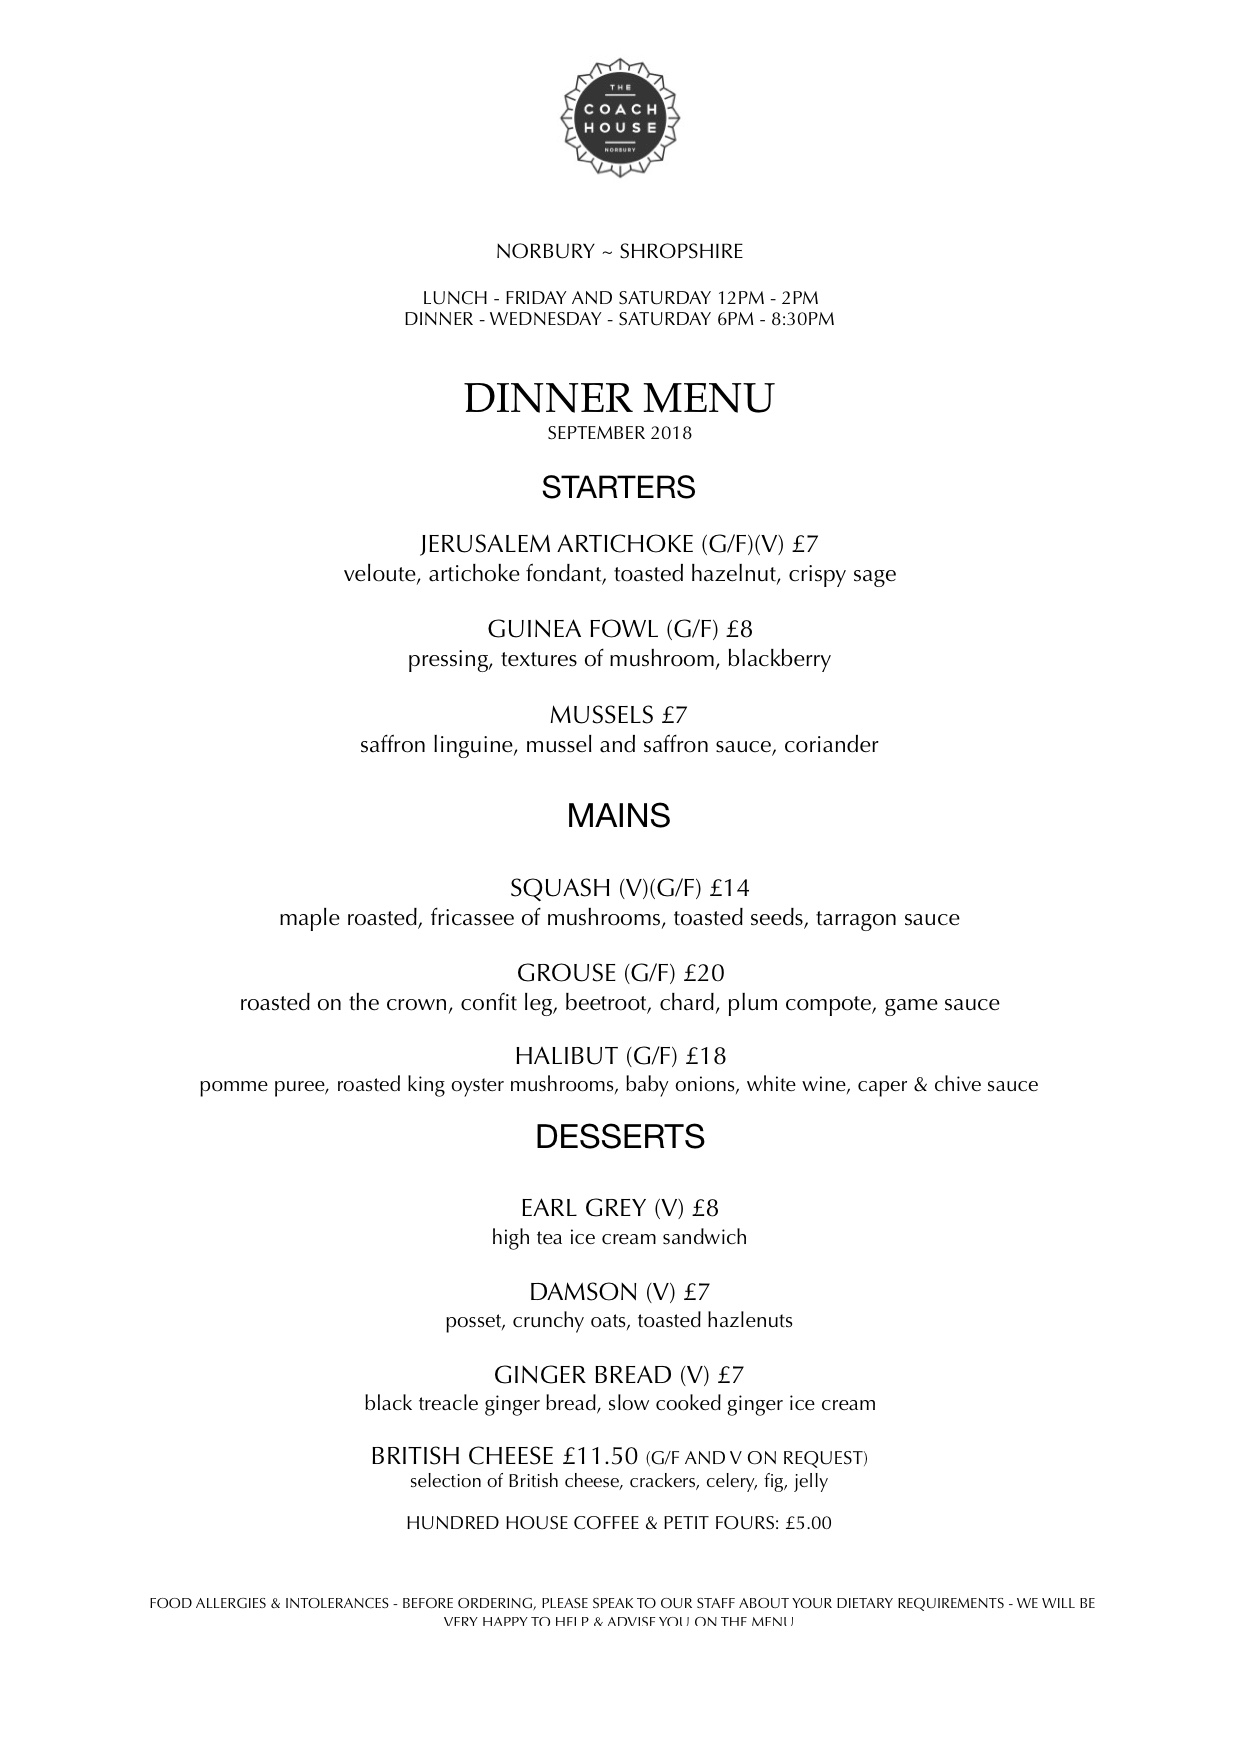 september_dinner_menu_coachhousenorbury.jpeg